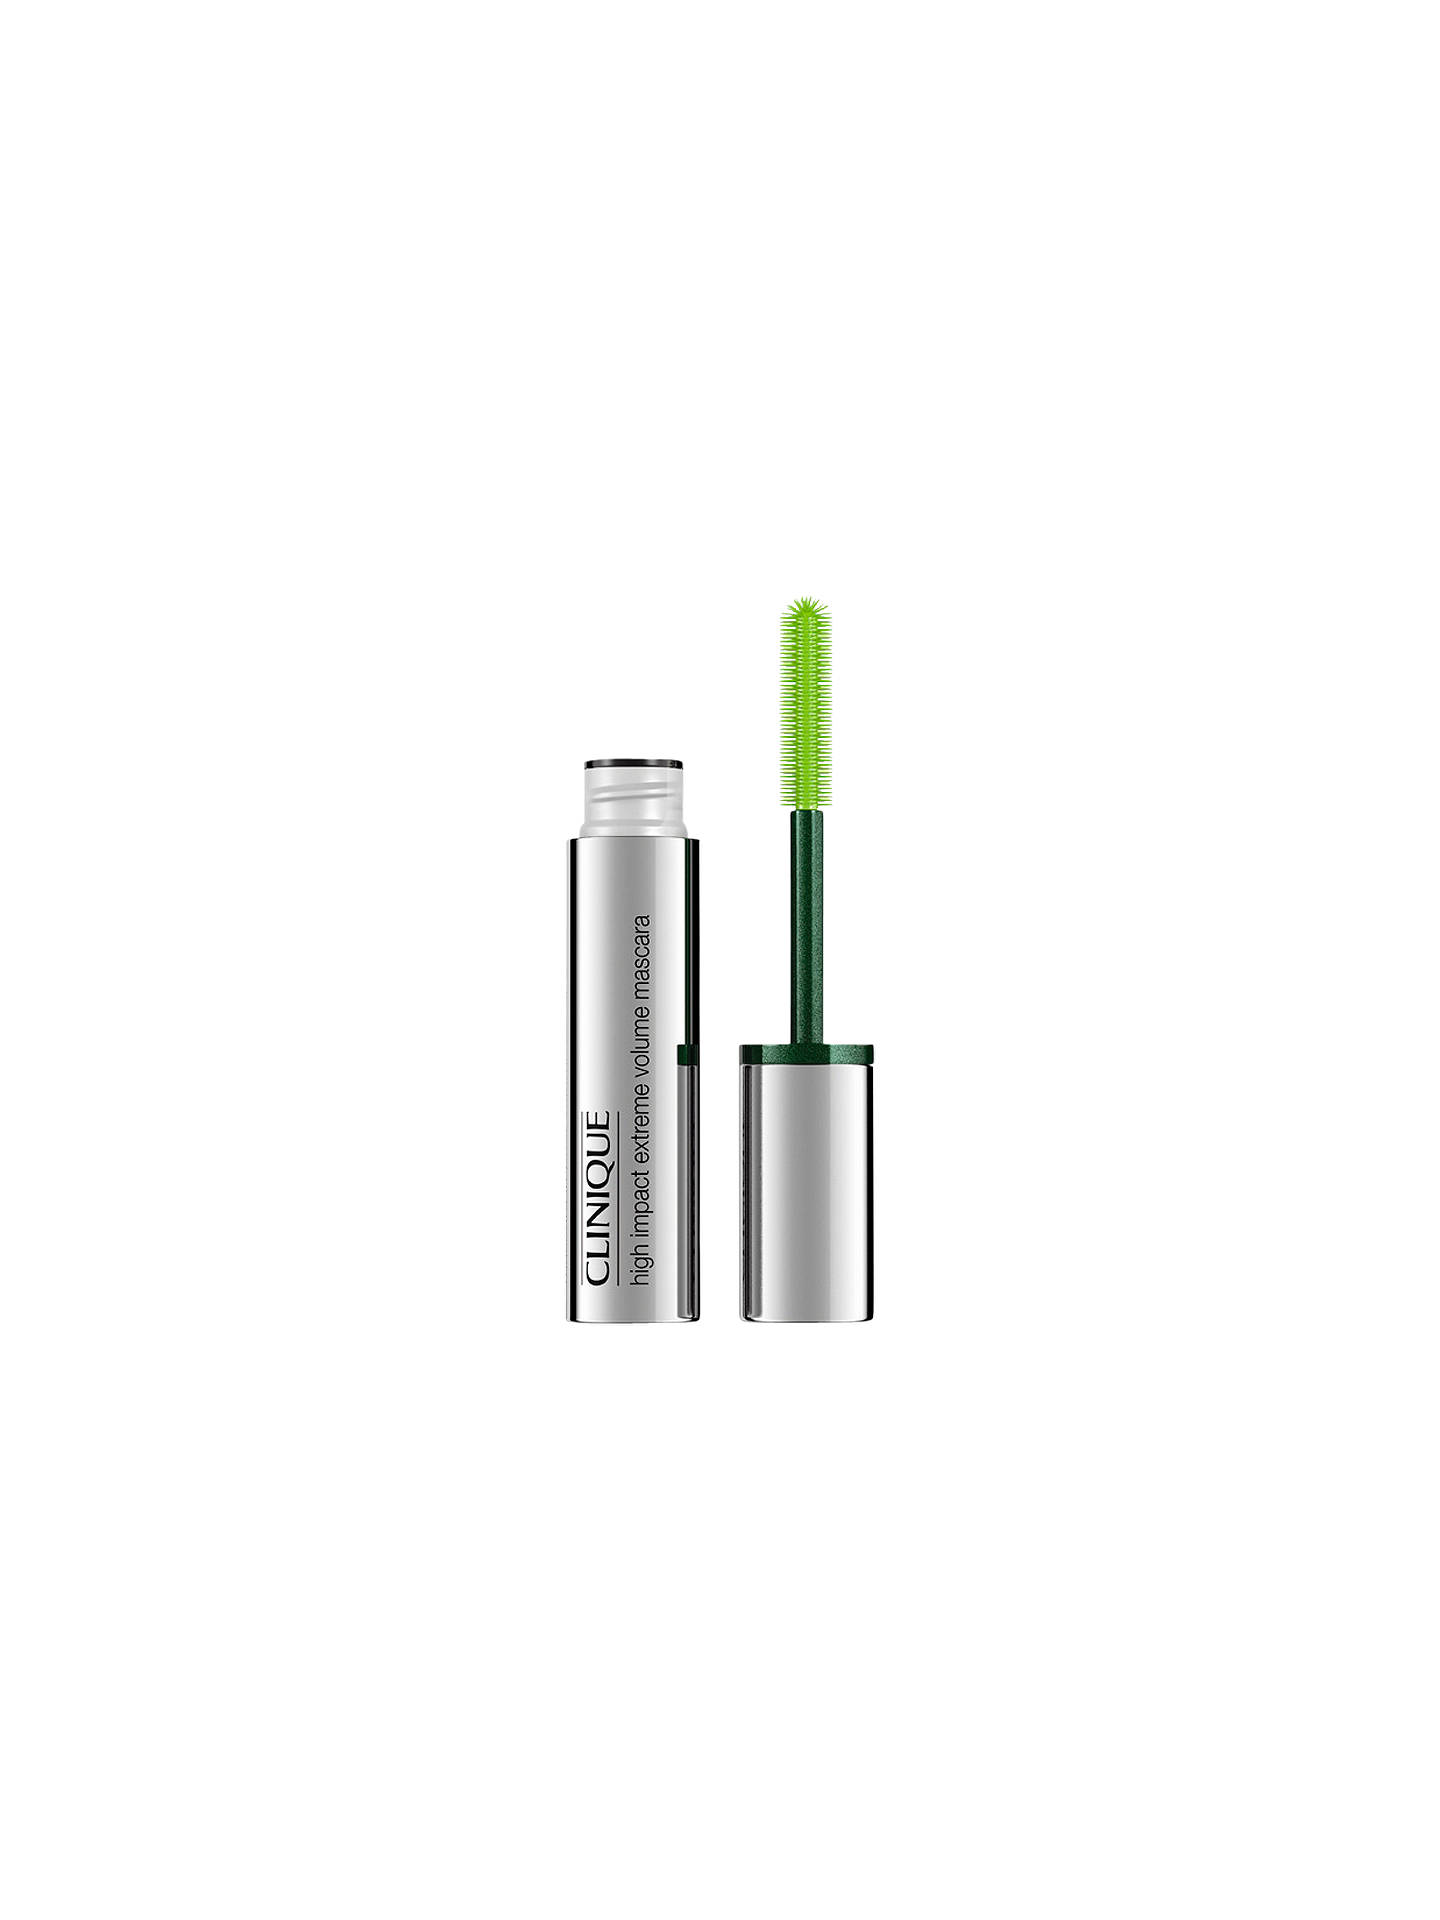 Buy Clinique High Impact Extreme Volume Mascara, Extreme Black Online at johnlewis.com